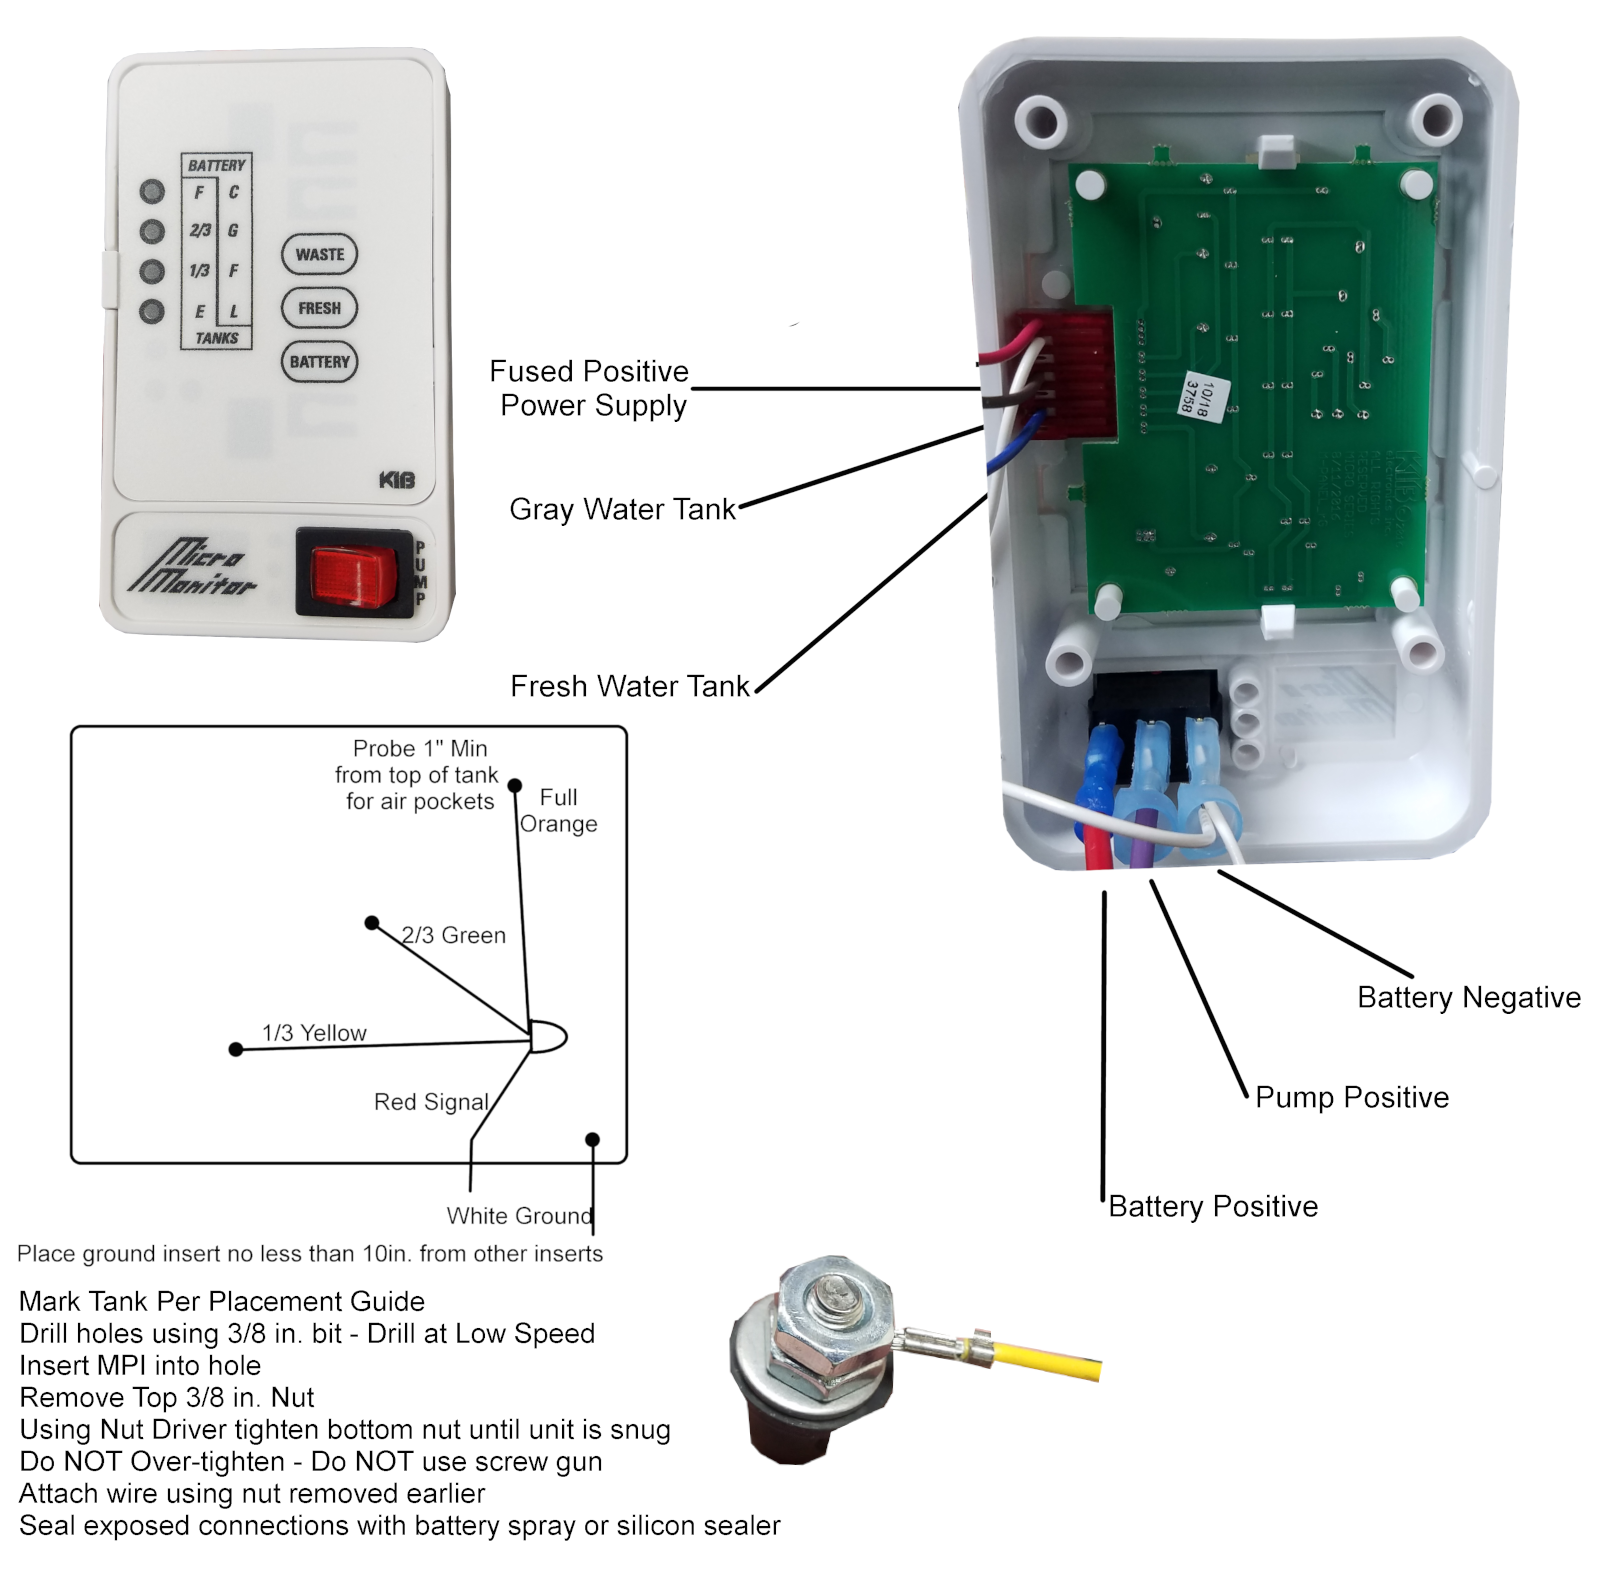 AD6327 Rv Tank Monitor Wiring Diagram | Wiring Resources 30 amp rv male plug wiring diagram Wiring Resources